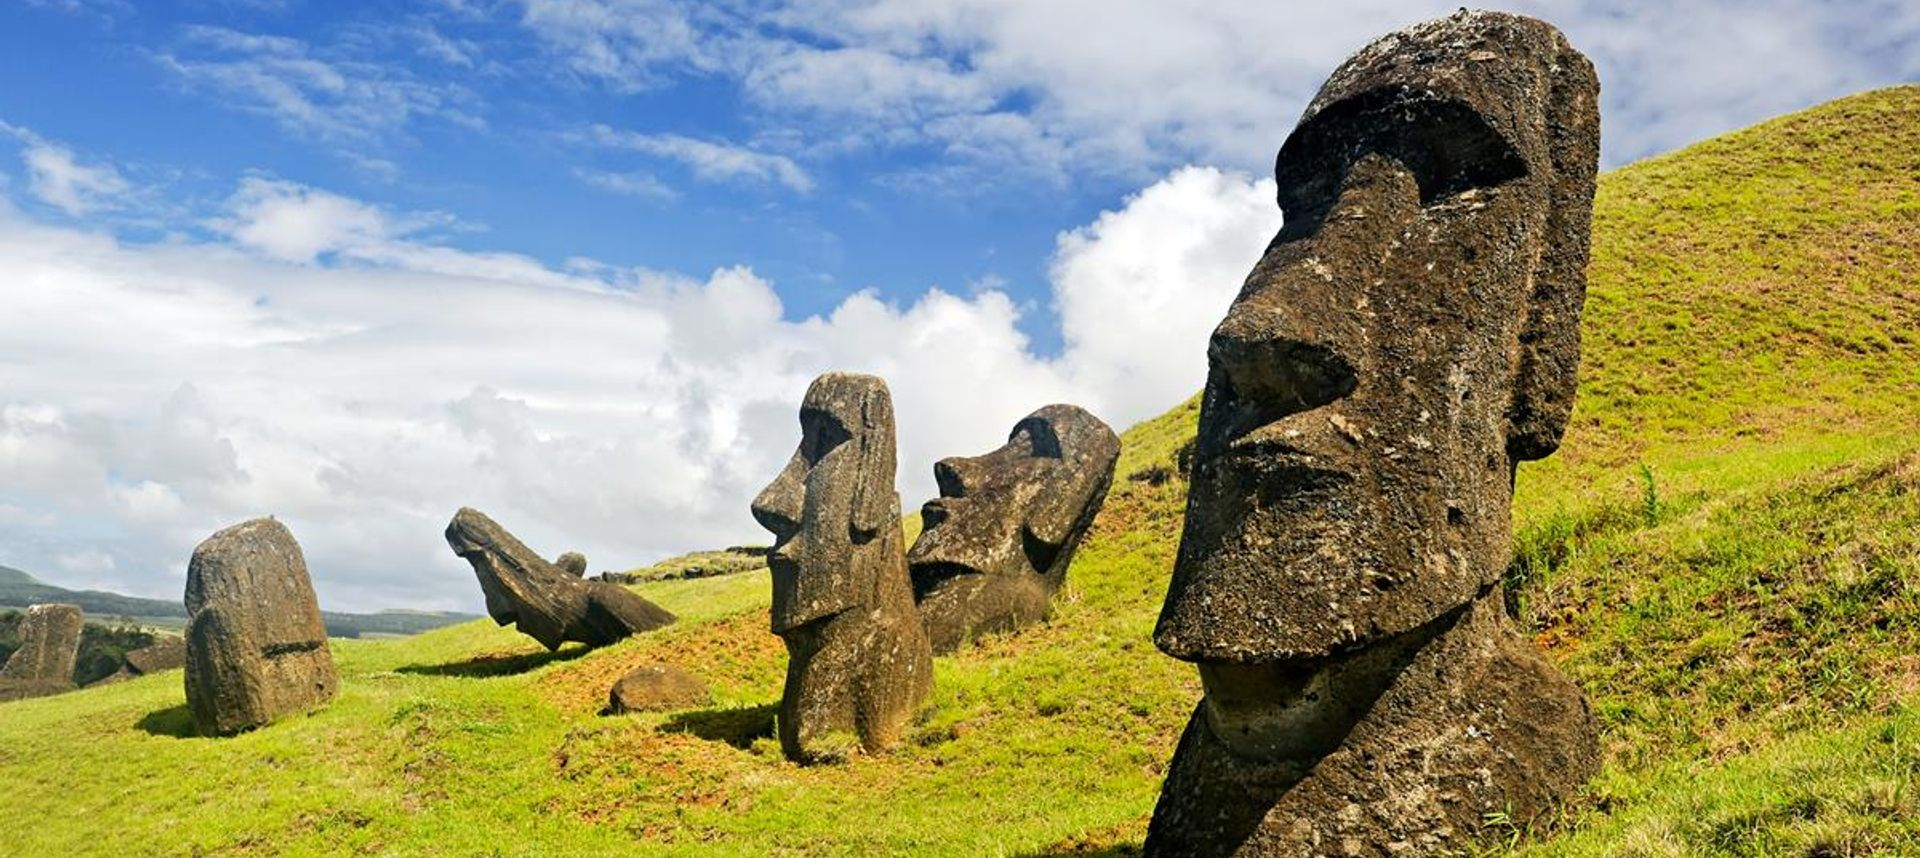 Ranks of giant moai (carved stone heads) on Easter Island, Chile (visitchile.org)